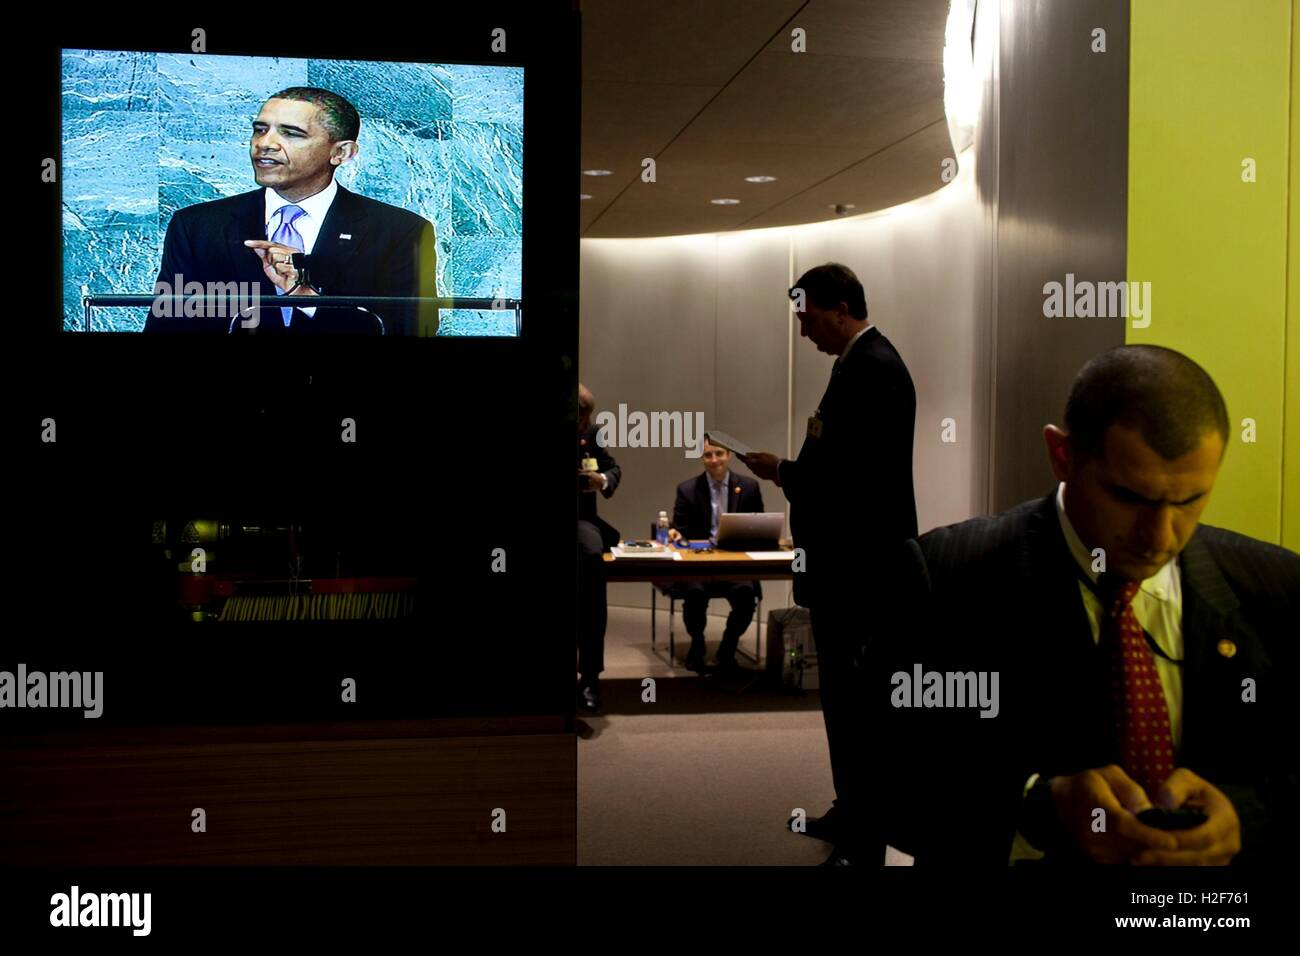 White House staff wait backstage as U.S. President Barack Obama delivers his address to the UN General Assembly - Stock Image